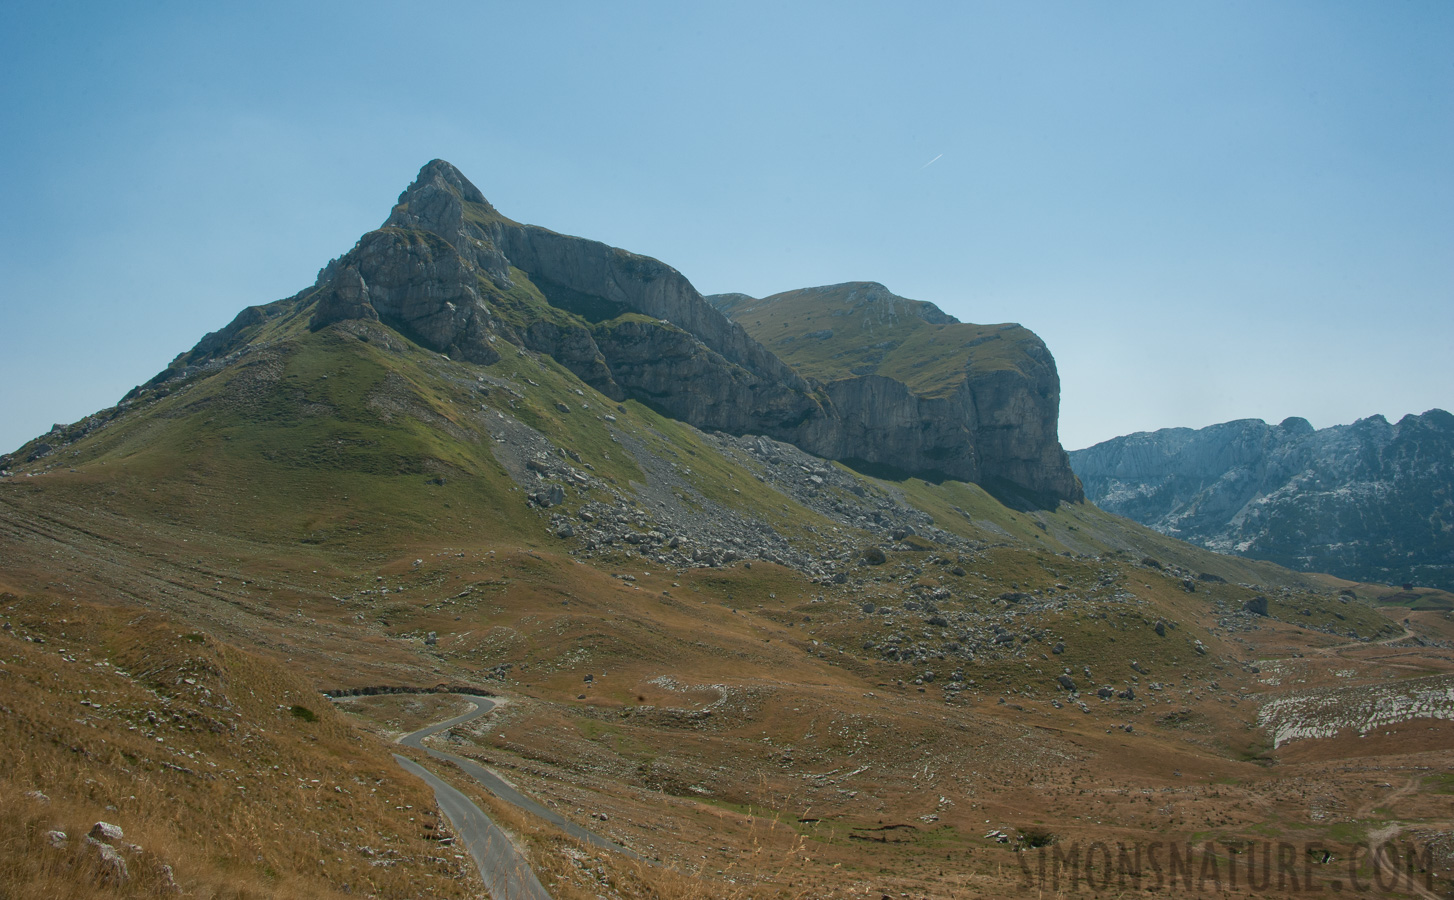 Montenegro - In the region of the Durmitor massif [28 mm, 1/160 sec at f / 18, ISO 400]